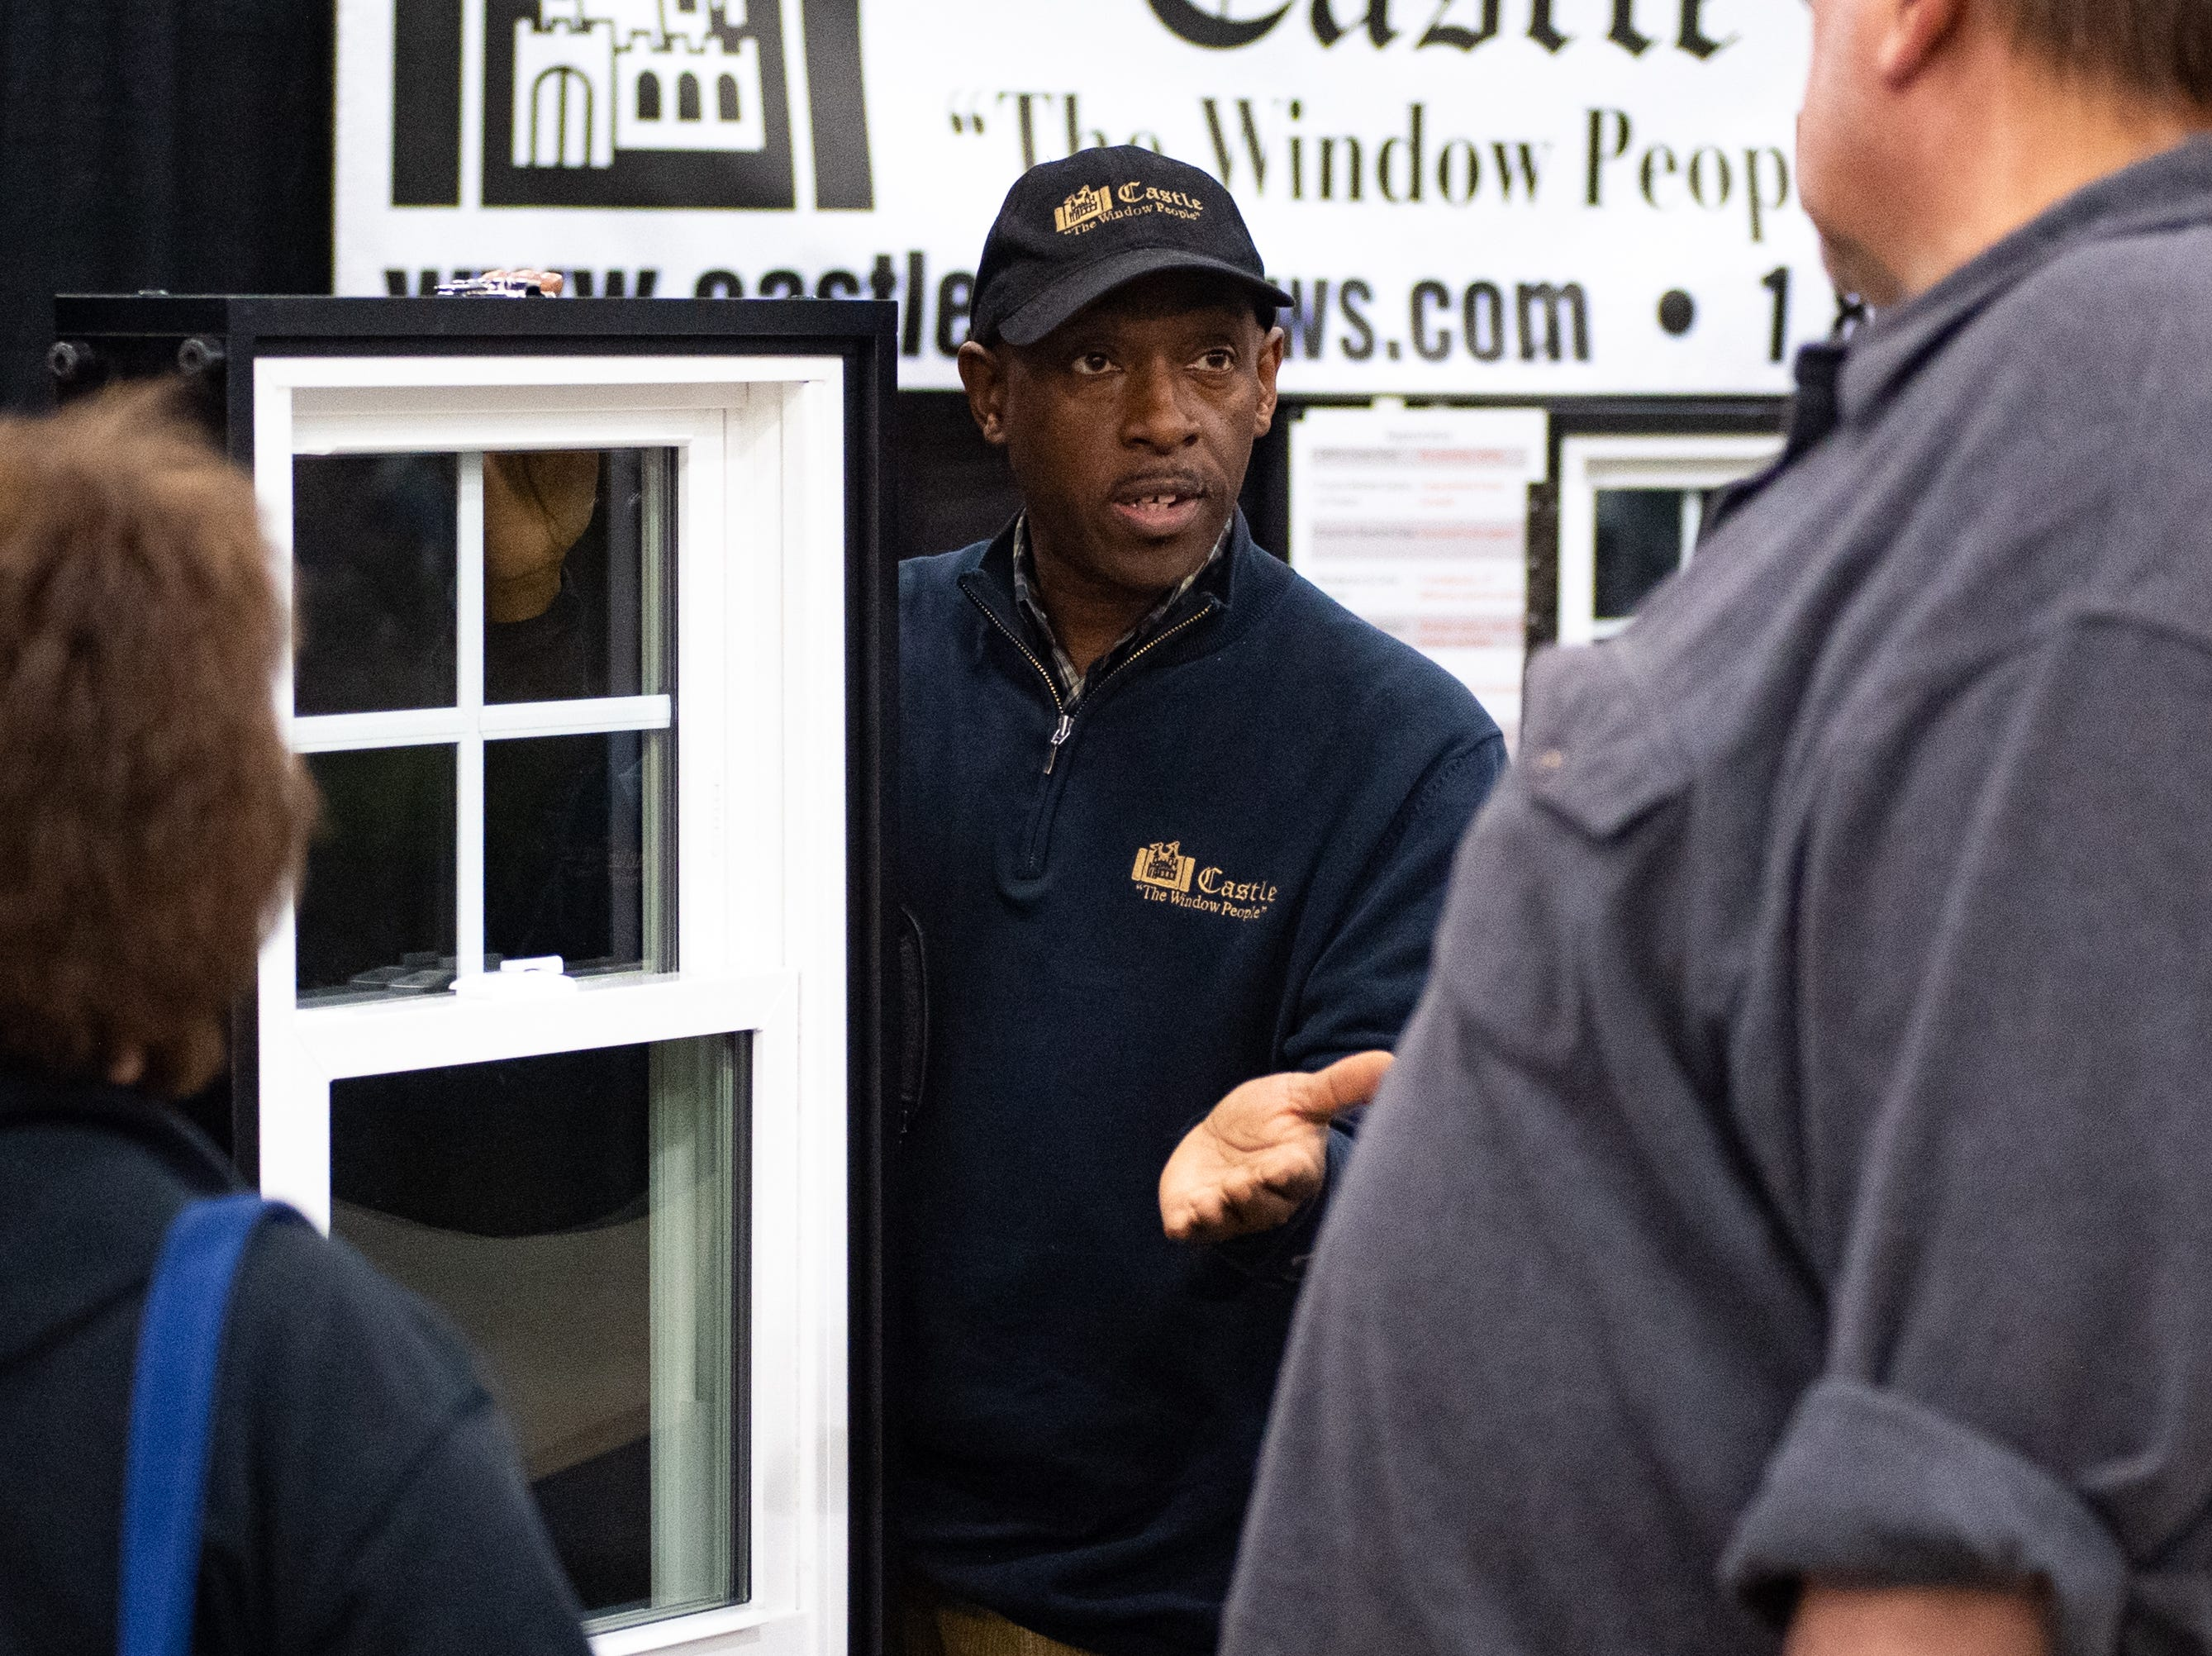 More than 150 exhibitors have plenty to offer at this weekend's York Builders Association Home & Garden Show, which continues through Sunday at the York Expo Center's Utz Arena. Here, Vennie Platter of Castle tells customers why they should consider buying new windows.